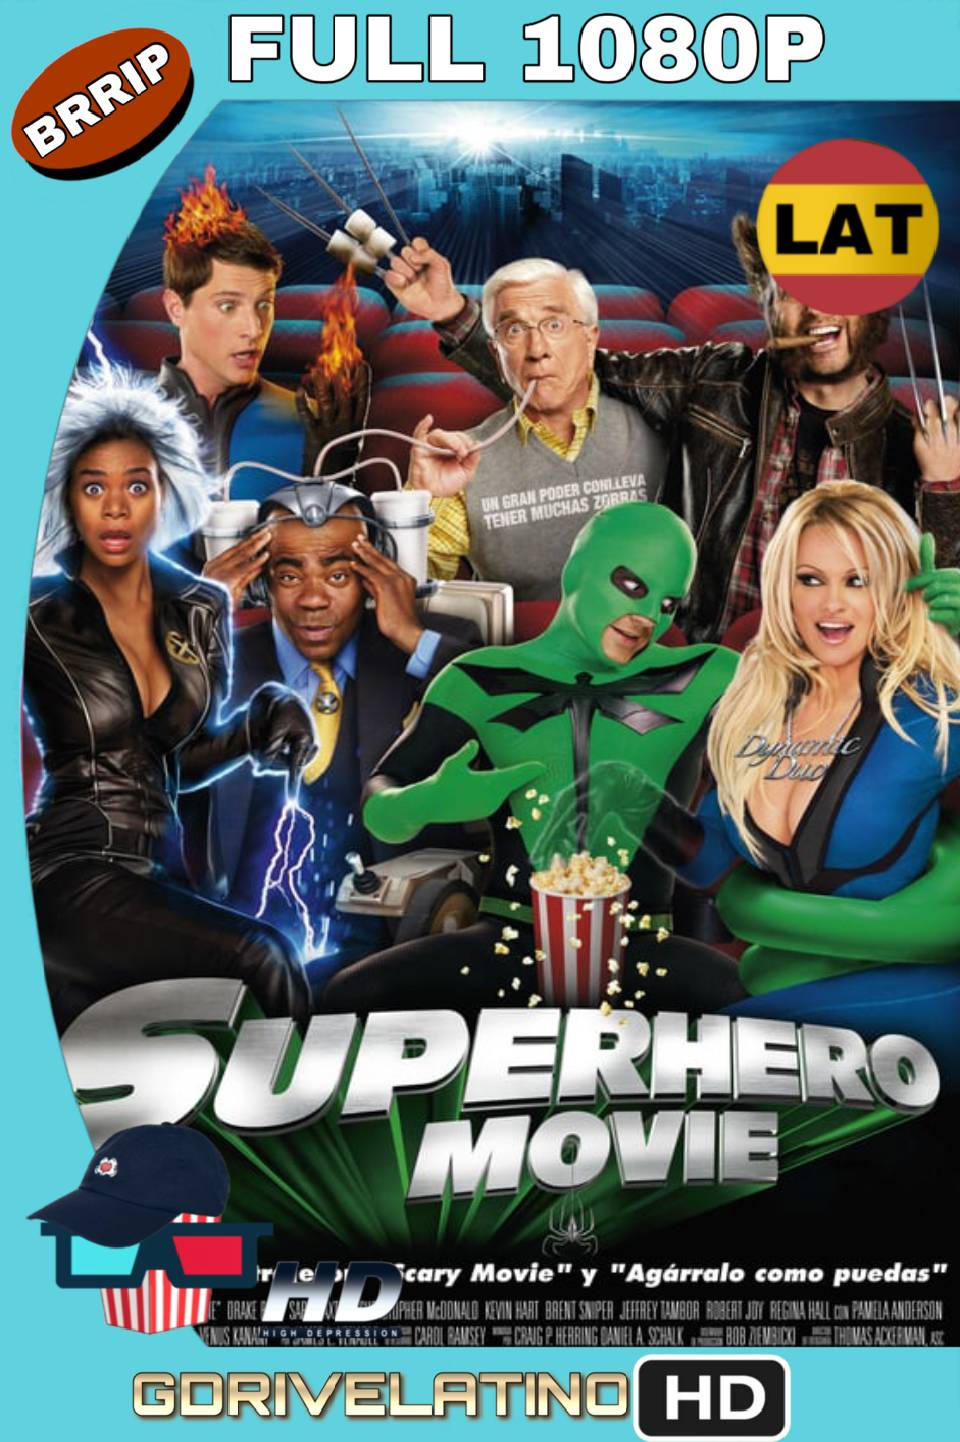 Superheroe La Pelicula (2008) Latino-Inglés FULL 1080p BRrip MKV